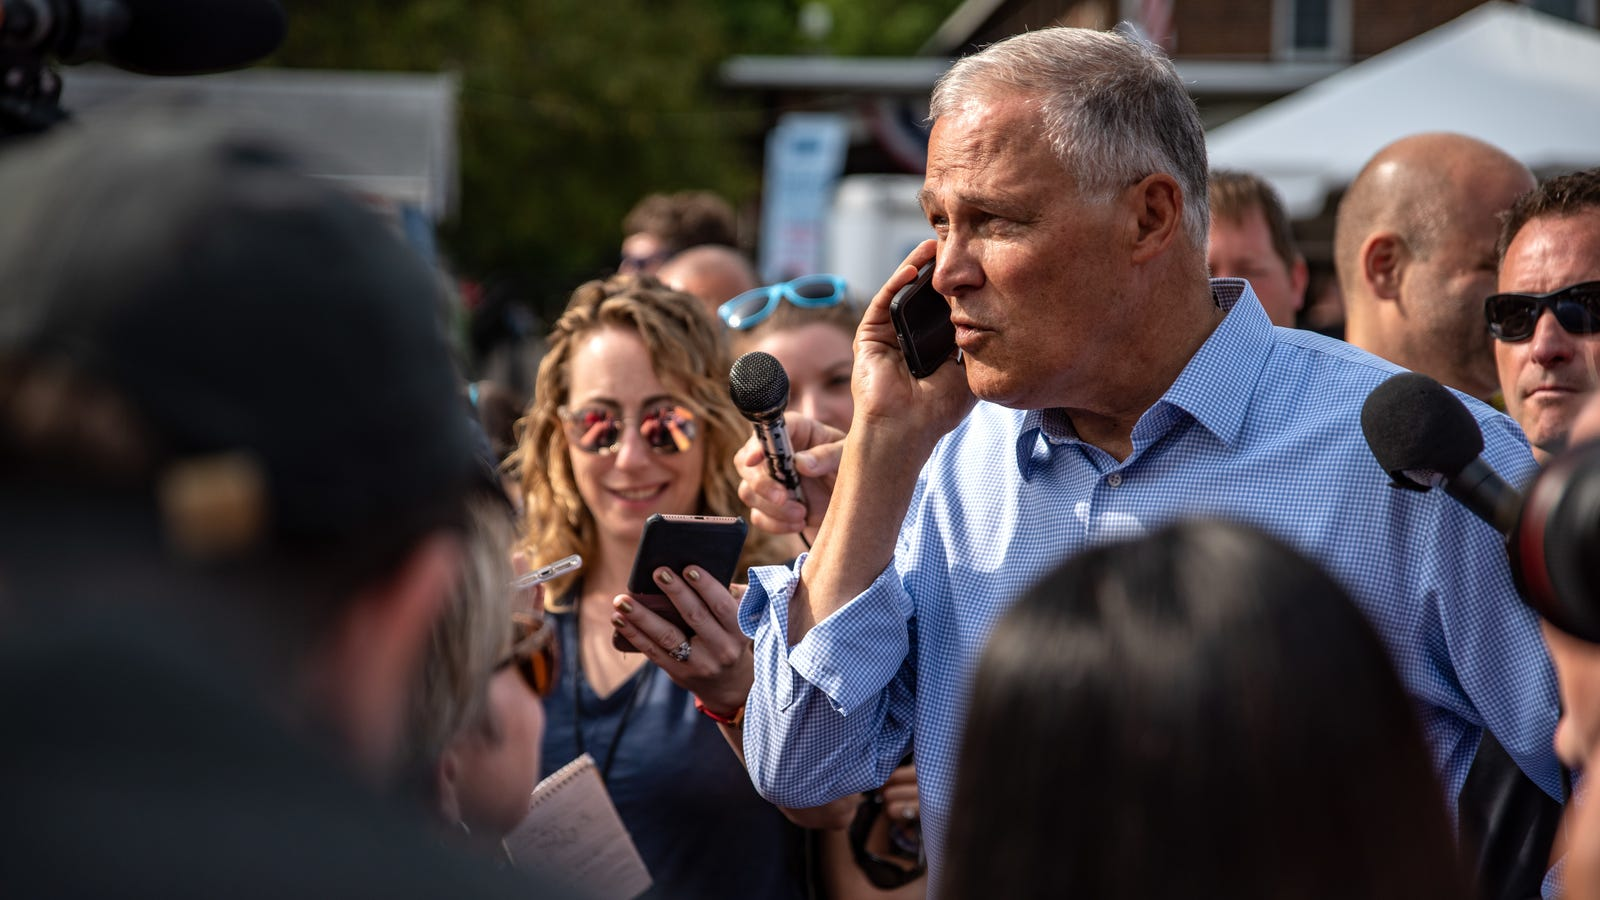 Jay Inslee's Long Green Shadow Over the 2020 Race